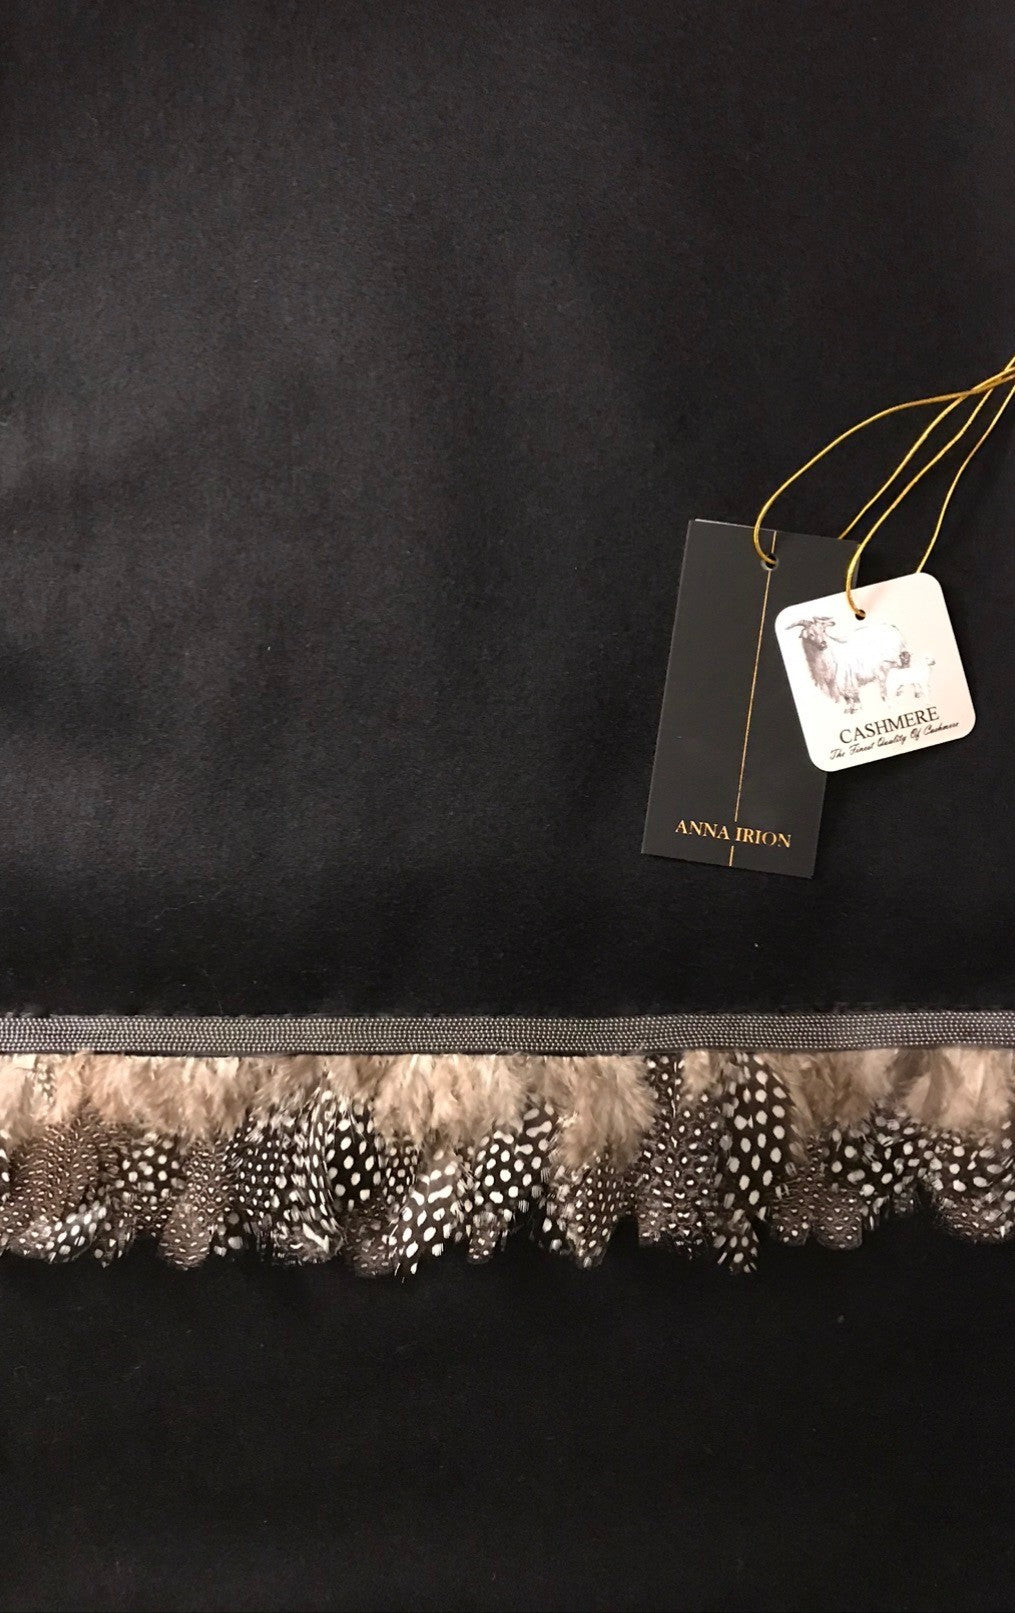 Bruna 100% Cashmere Loro Piana Fabric Midnight Black Wrap with Guinea Hen Feathers, Gunmetal light weight metal mesh trim